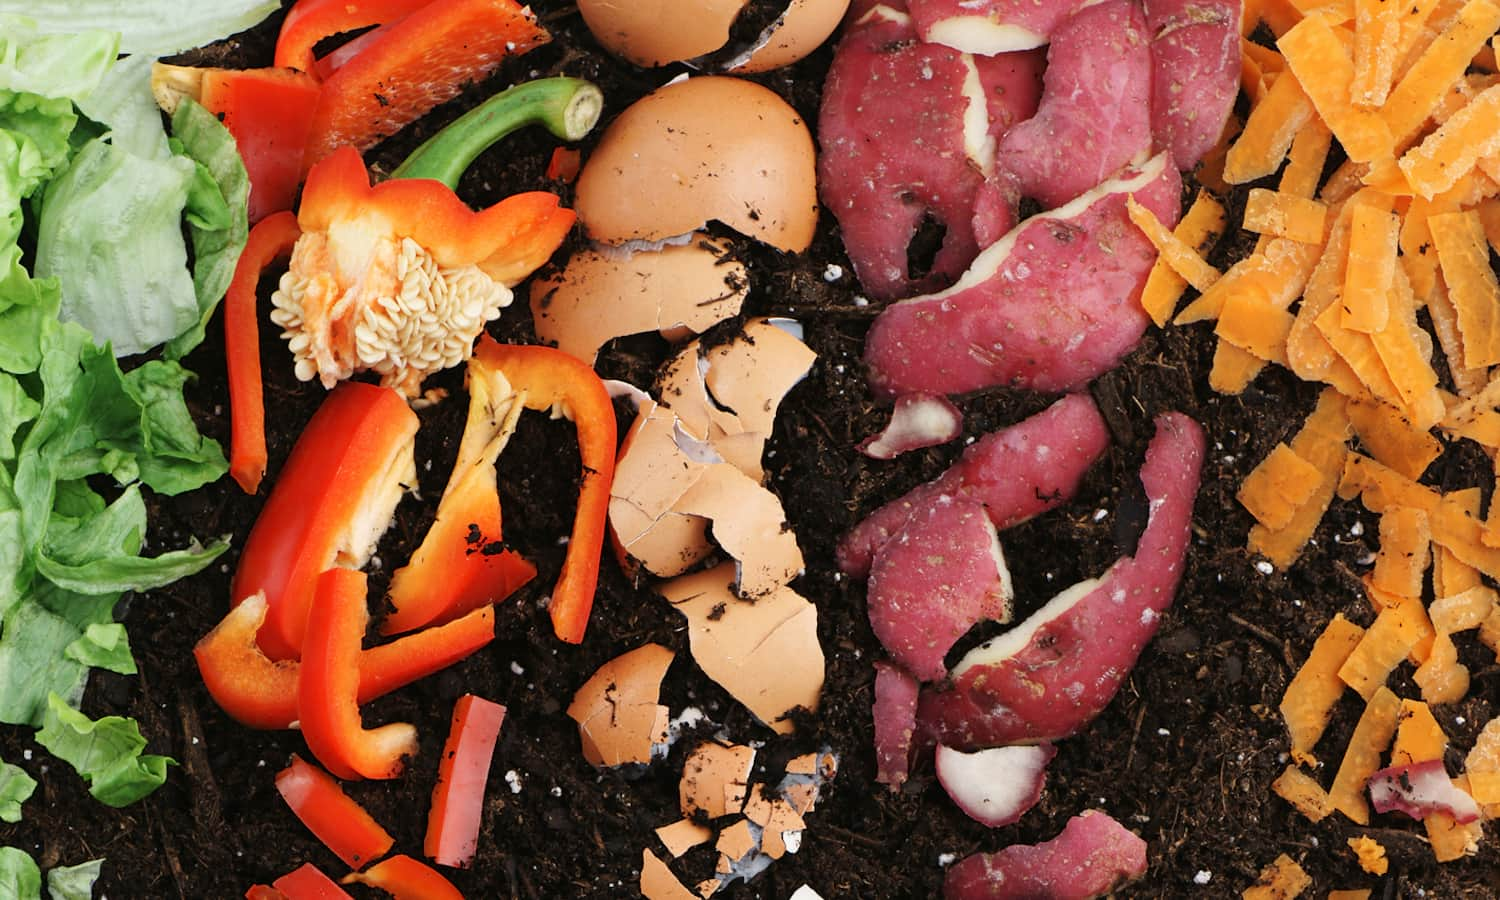 Small scale composting helps build community, improve local soil, and can save cities up to US$250,000 a year.